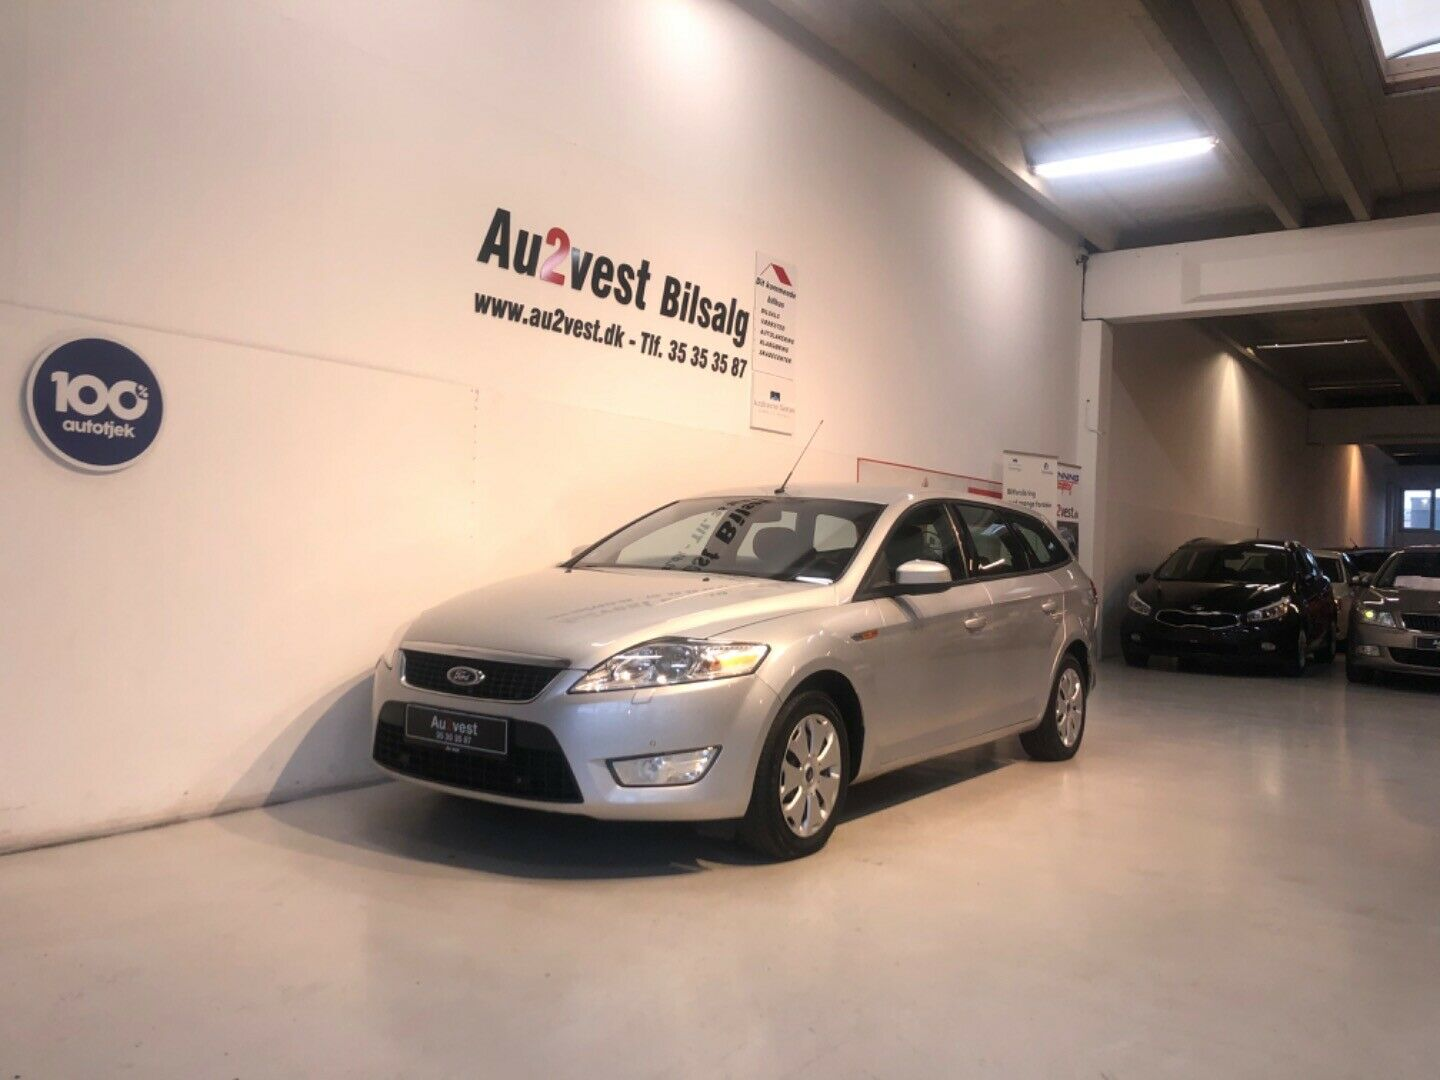 Ford Mondeo 2,0 TDCi 140 Trend Collection stc. 5d - 99.999 kr.